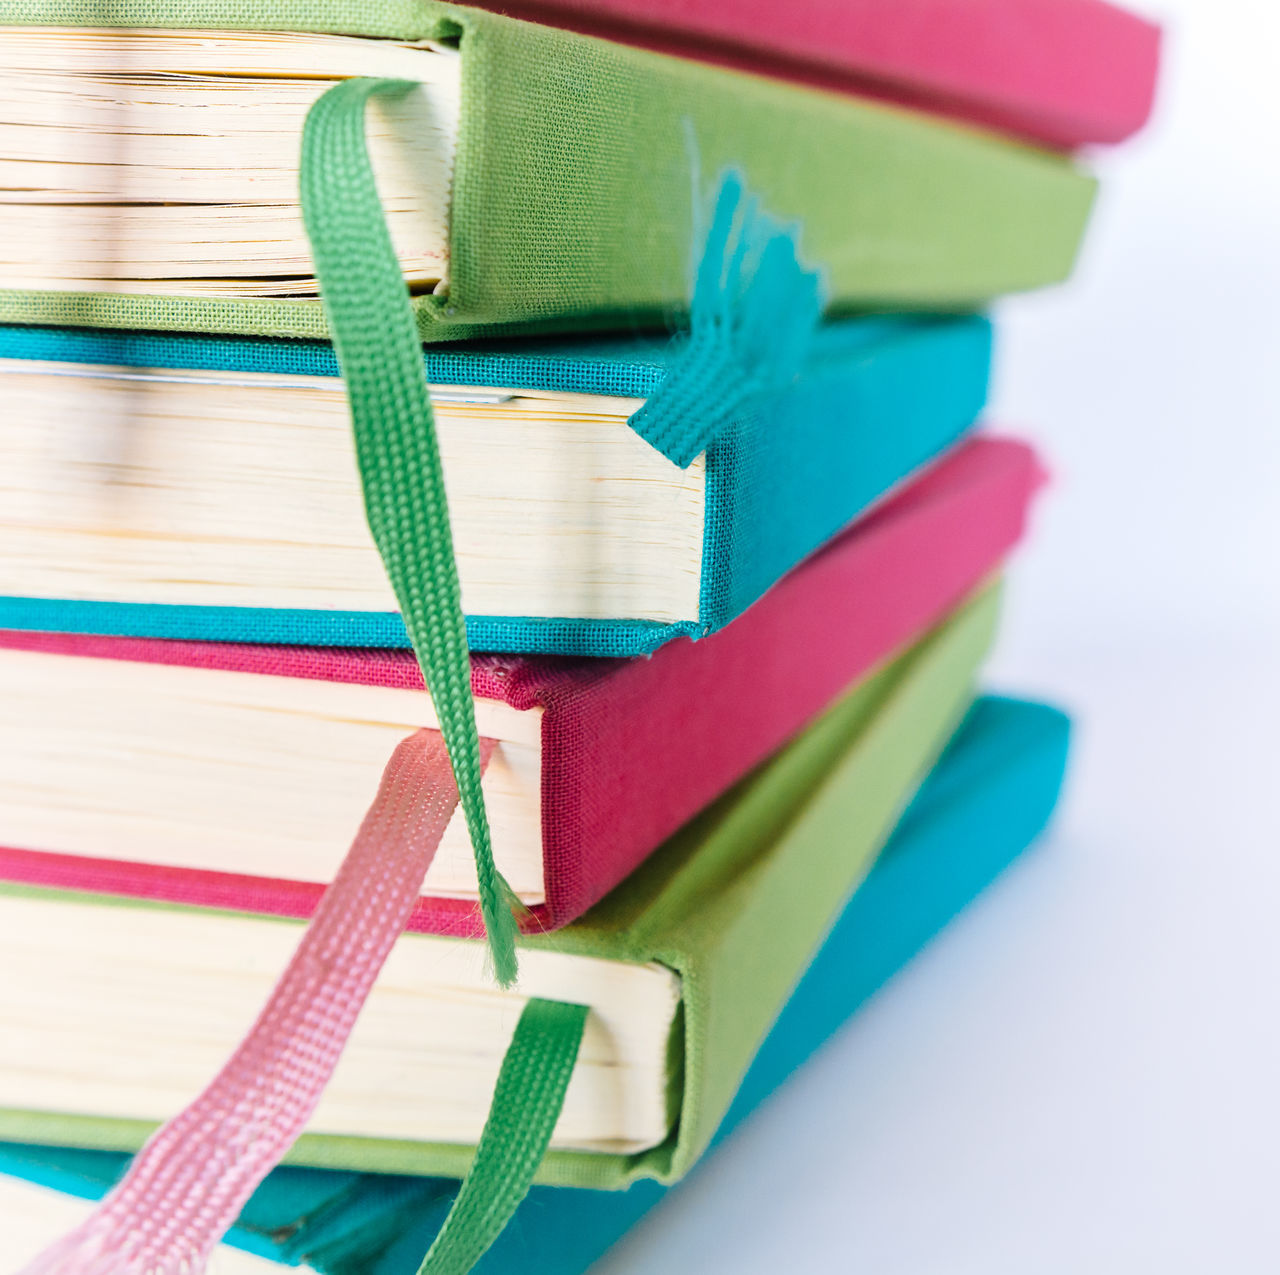 Colorful Books Blue Books Choice Close-up Colored Pencil Colorful Colors Cyan Day Education Educational Green Indoors  Learning LearningEveryday No People Pink Reading Reading Books Reading Time Studio Shot Study Hard Study Time Studying